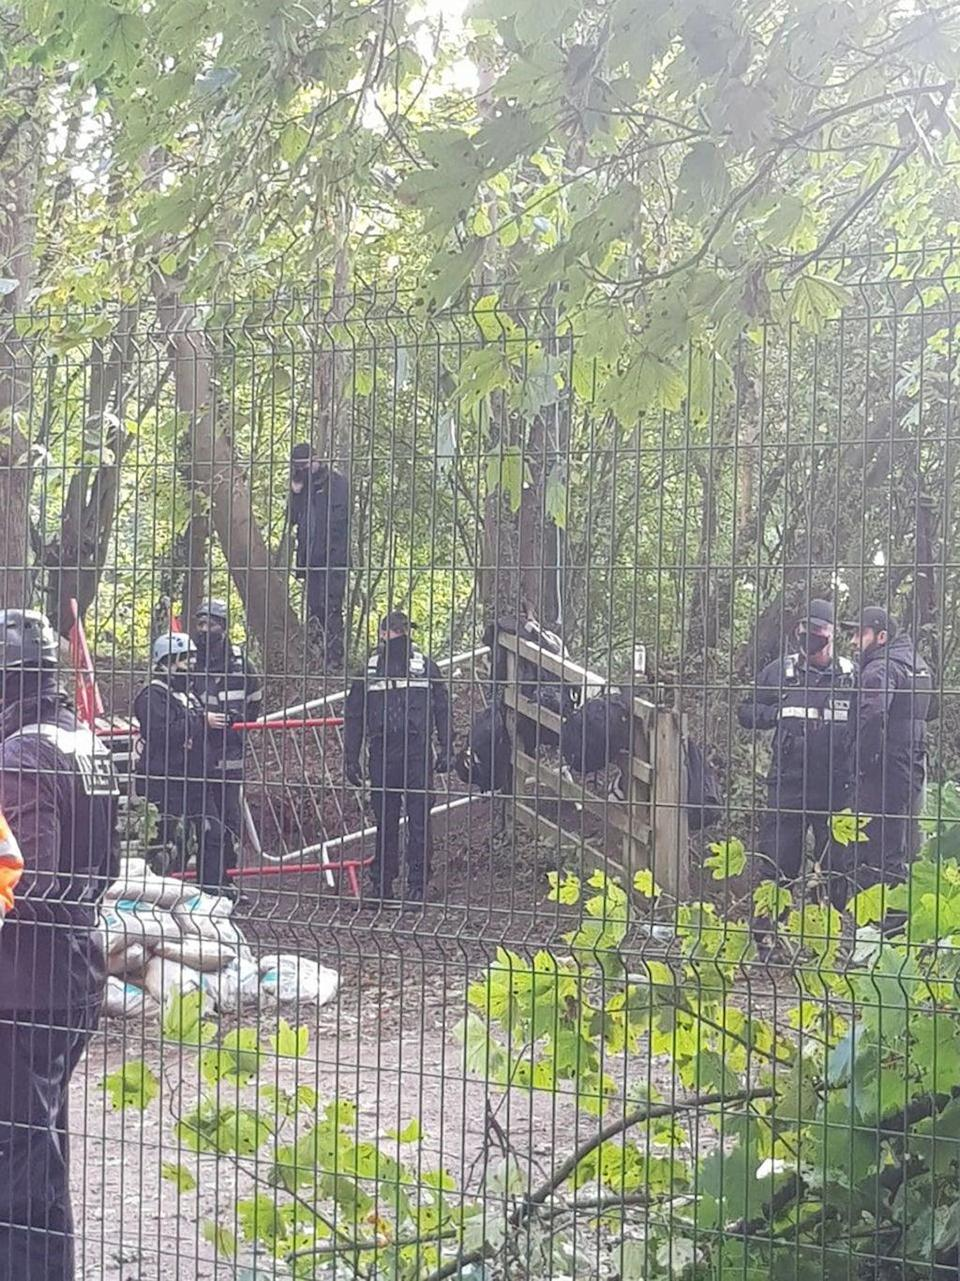 Environmental activists opposed to HS2 are evicted from the camp (PA) (PA Media)